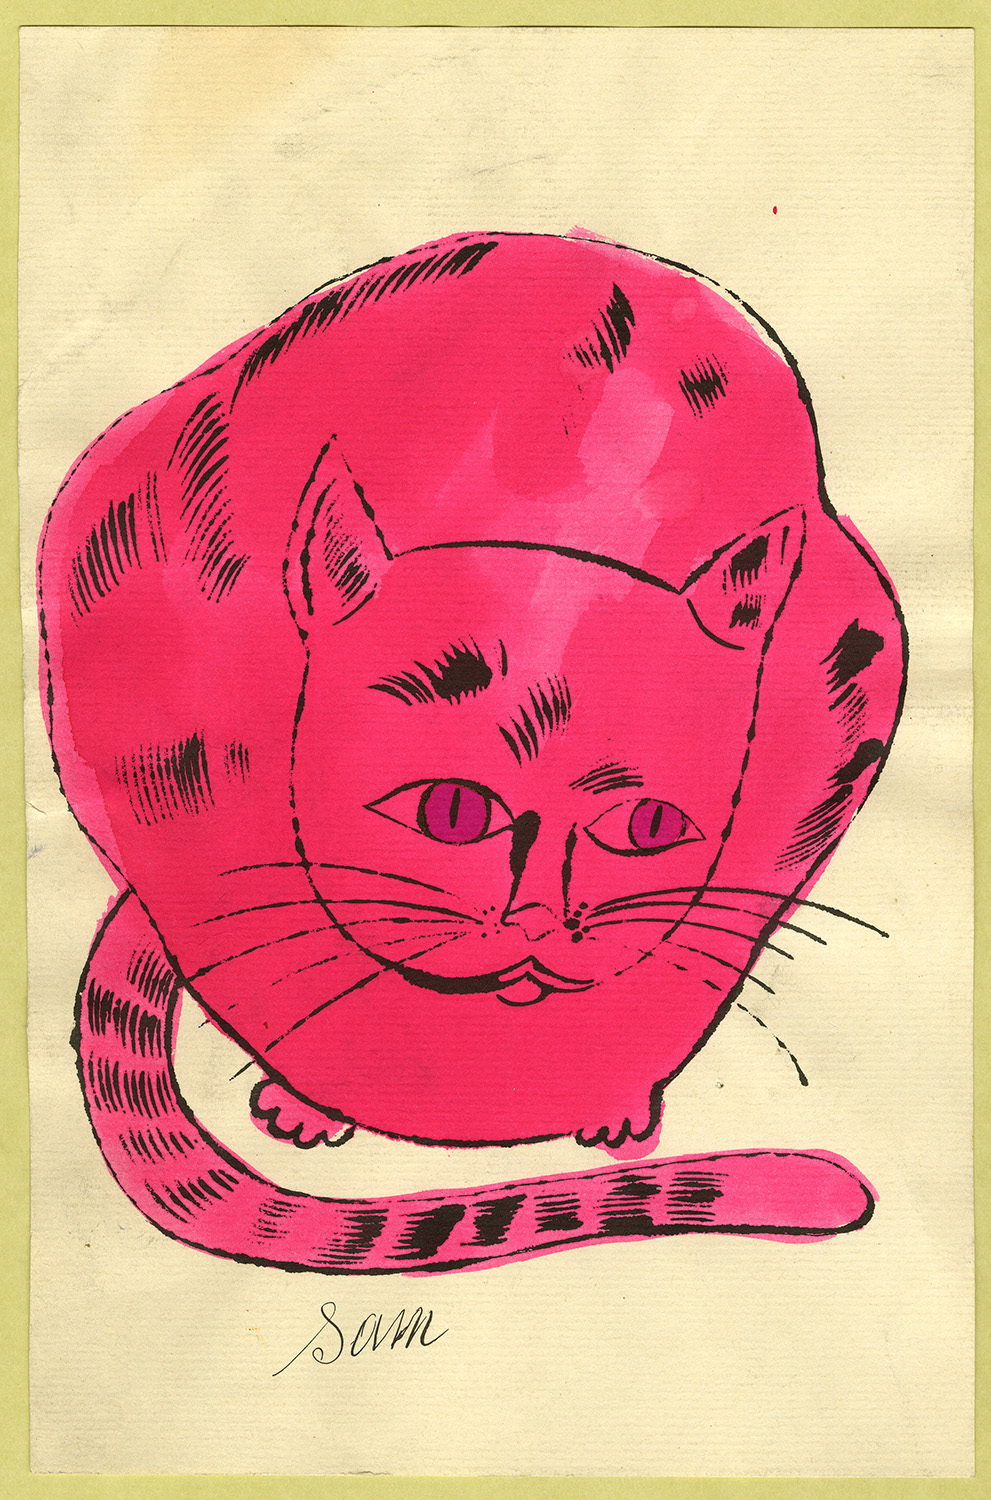 Andy Warhol, Illustration (from 25 Cats Name Sam and One Blue Pussy), ca. 1954, ©AWF, courtesy of The Andy Warhol Museum.